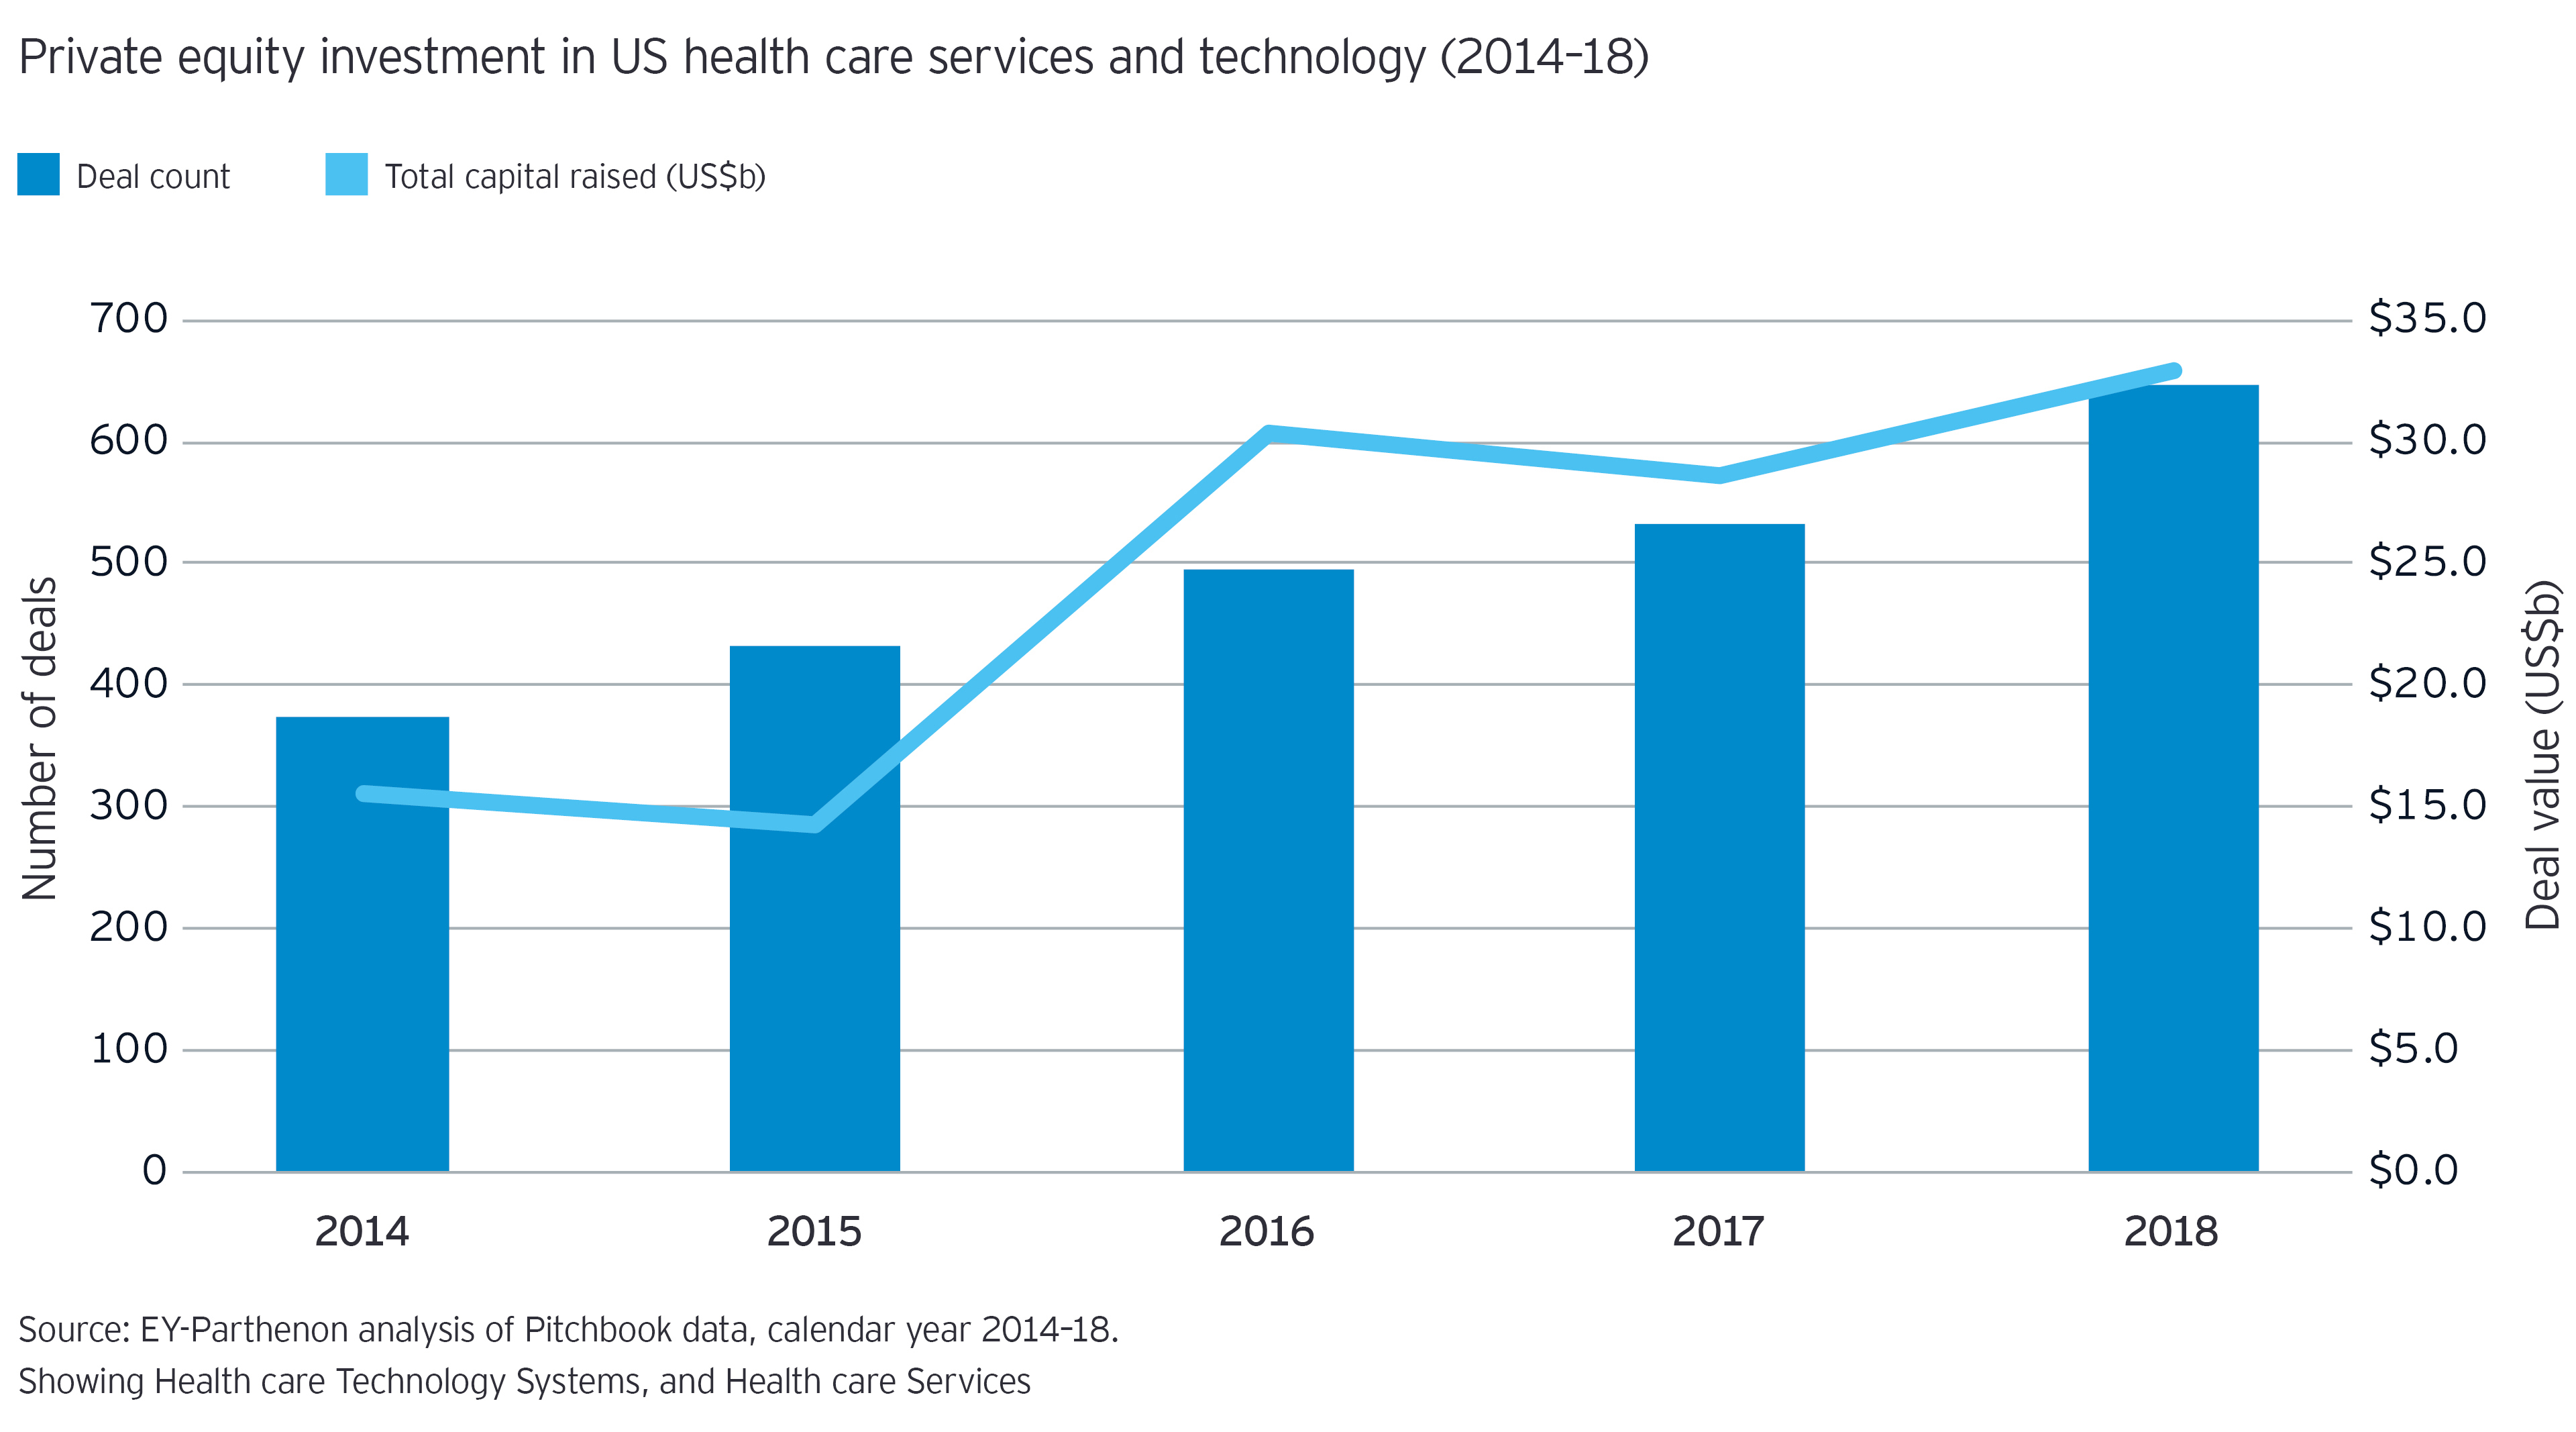 Private equity investment in US healthcare and technology chart